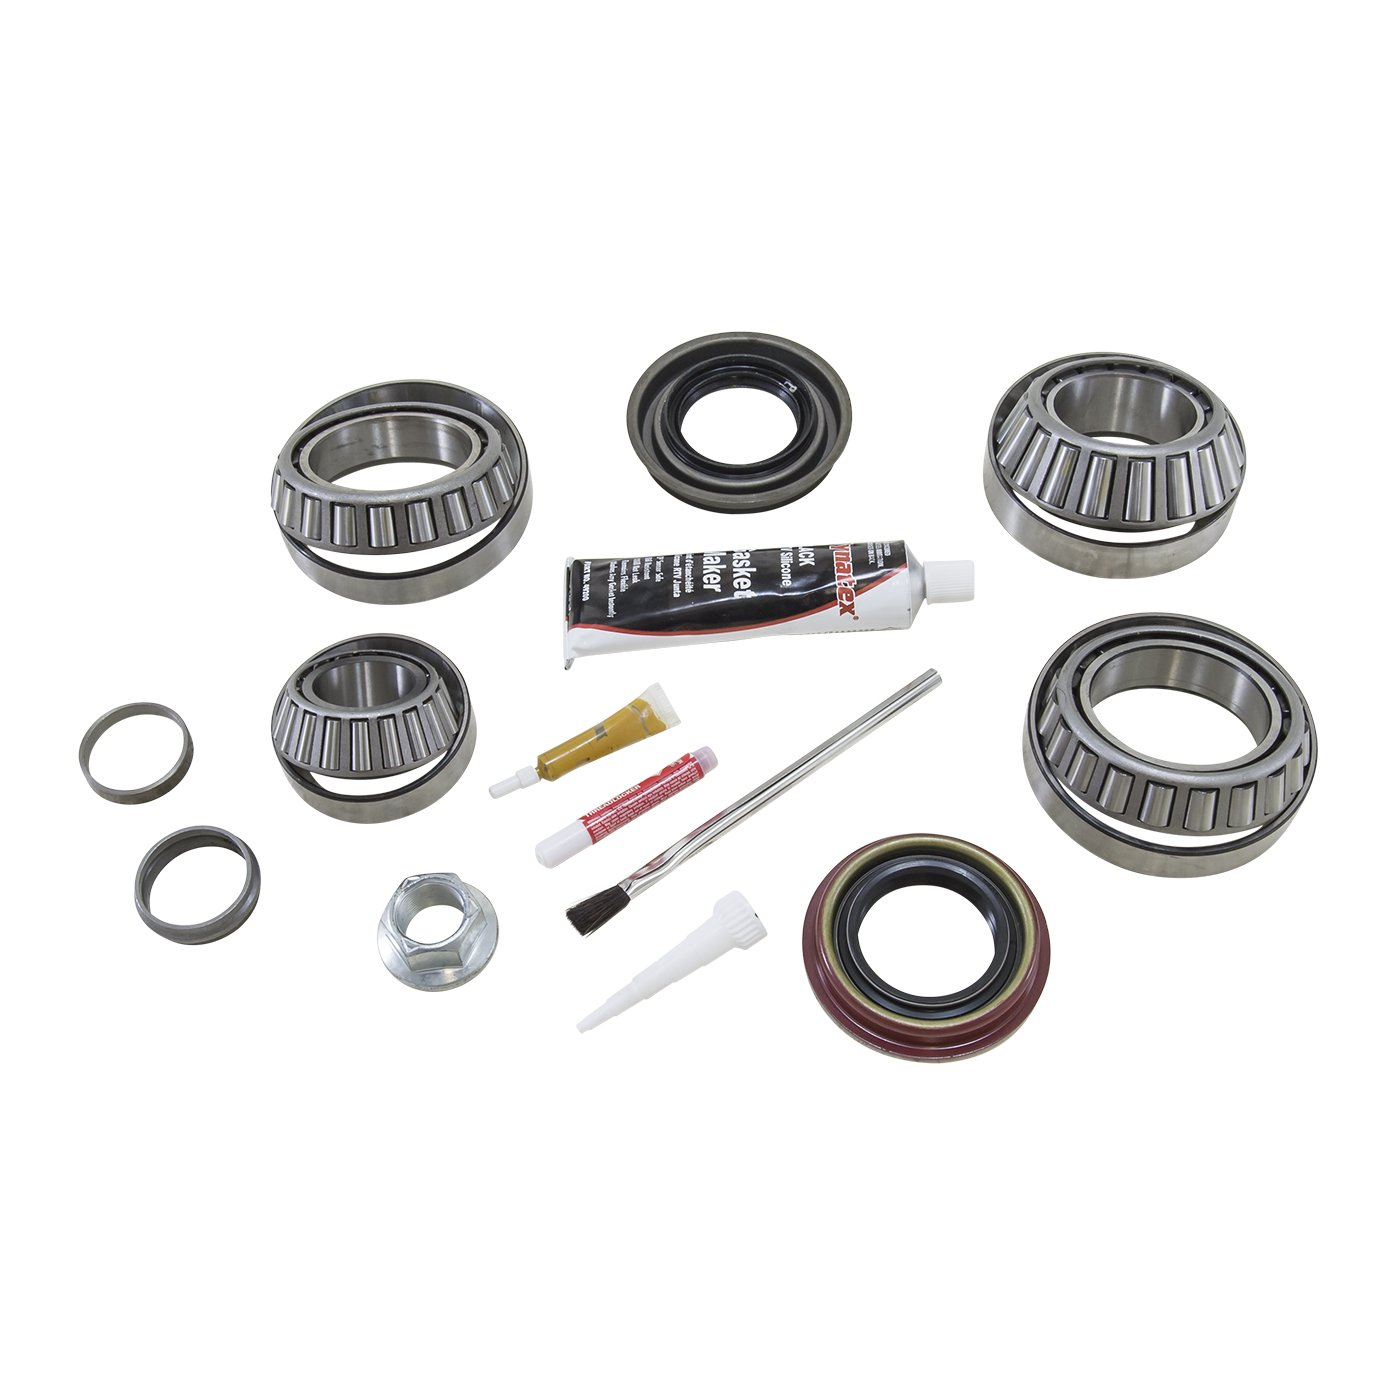 USA Standard Gear (ZBKF9.75-D) Bearing Kit for Ford 9.75 Differential by USA Standard Gear